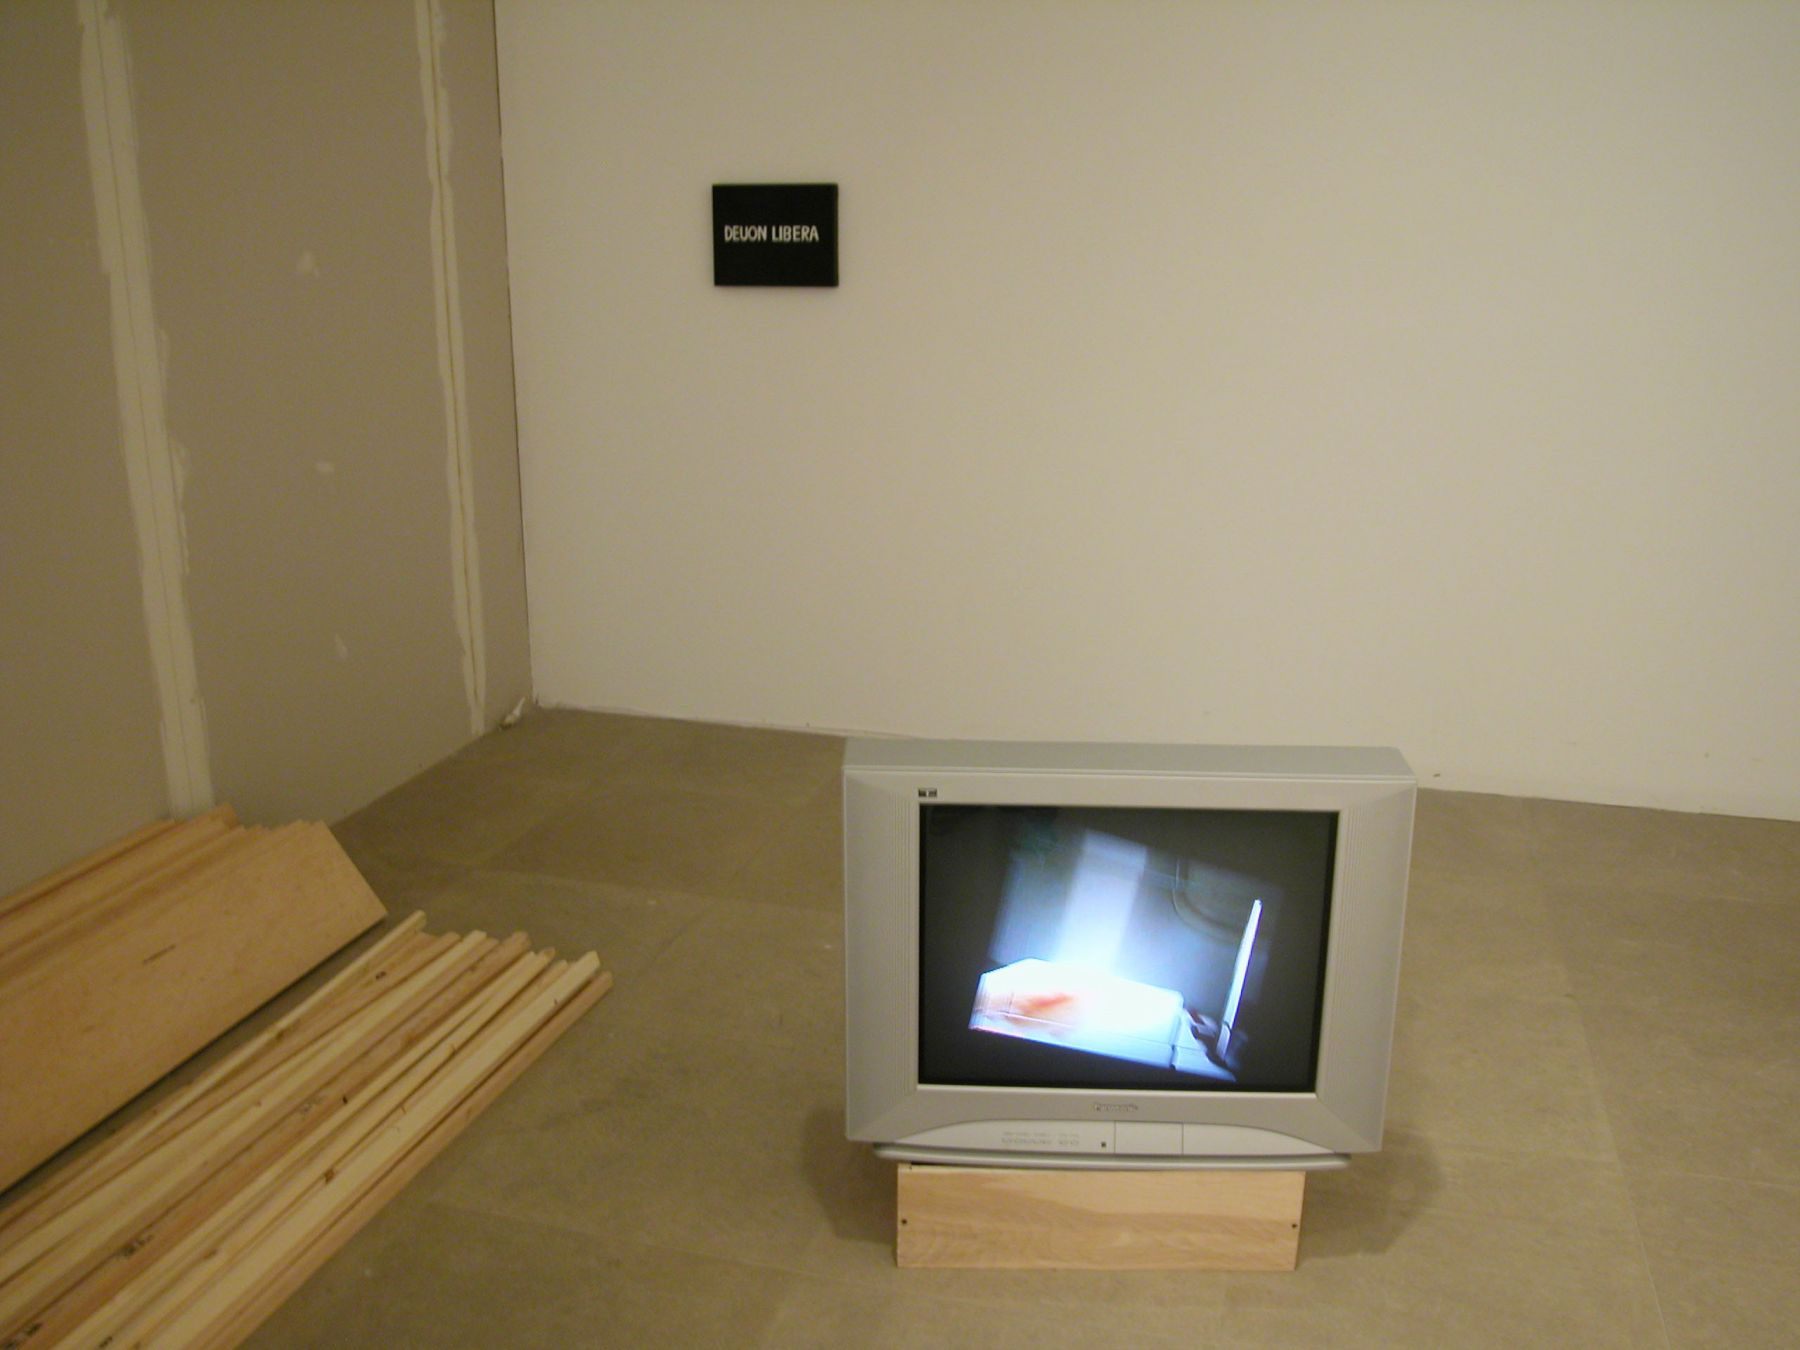 Installation view, Don't Think About Me I'm Alright,  Greene Naftali, New York, 2004